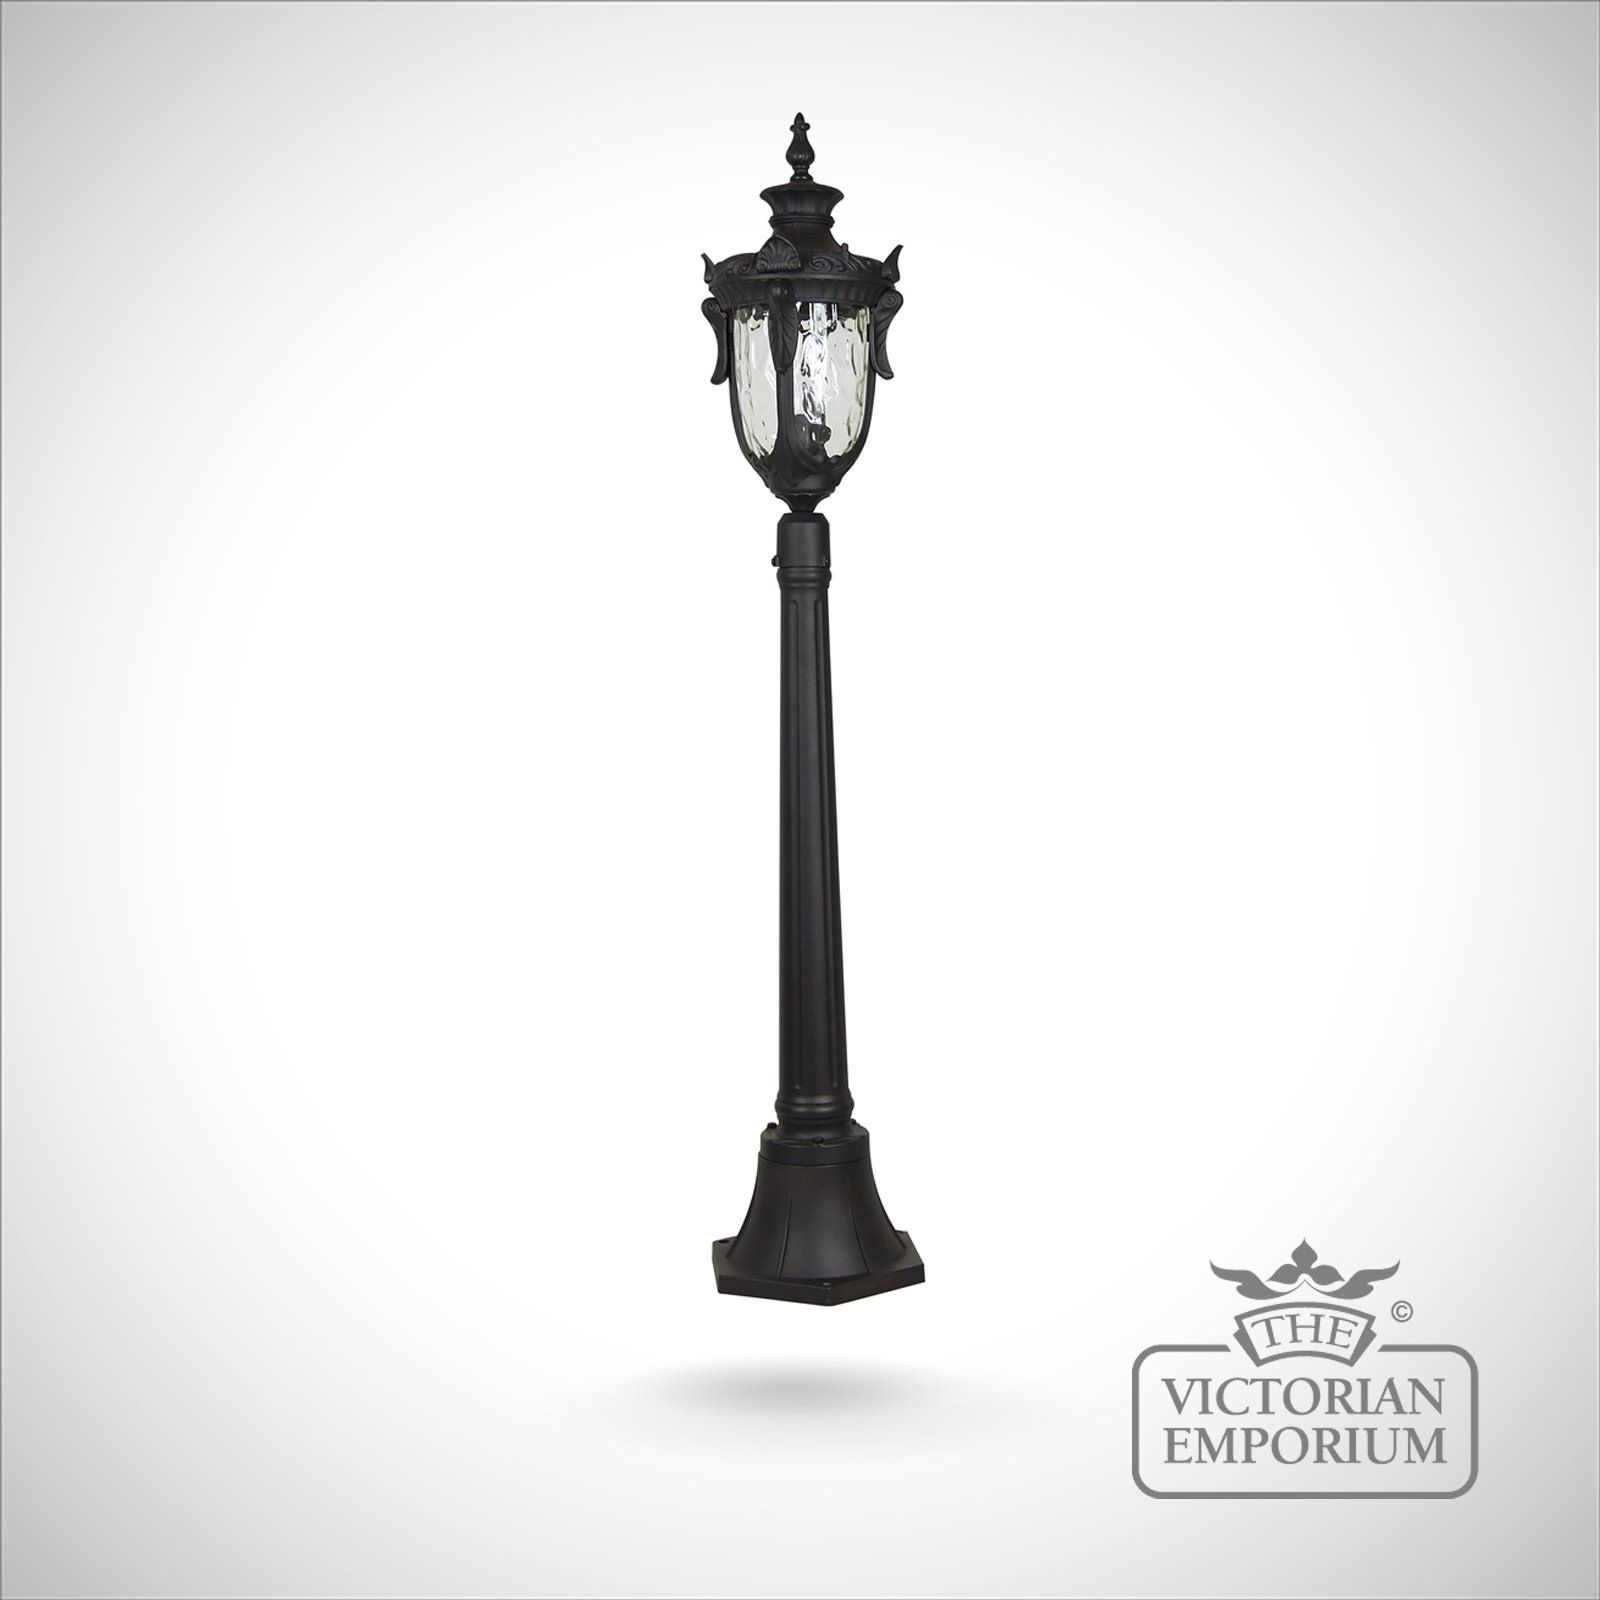 Outdoor Residential Lighting Fixtures Decorative wooden lamp posts wooden designs lamp posts and lanterns outdoor lighting the victorian emporium workwithnaturefo